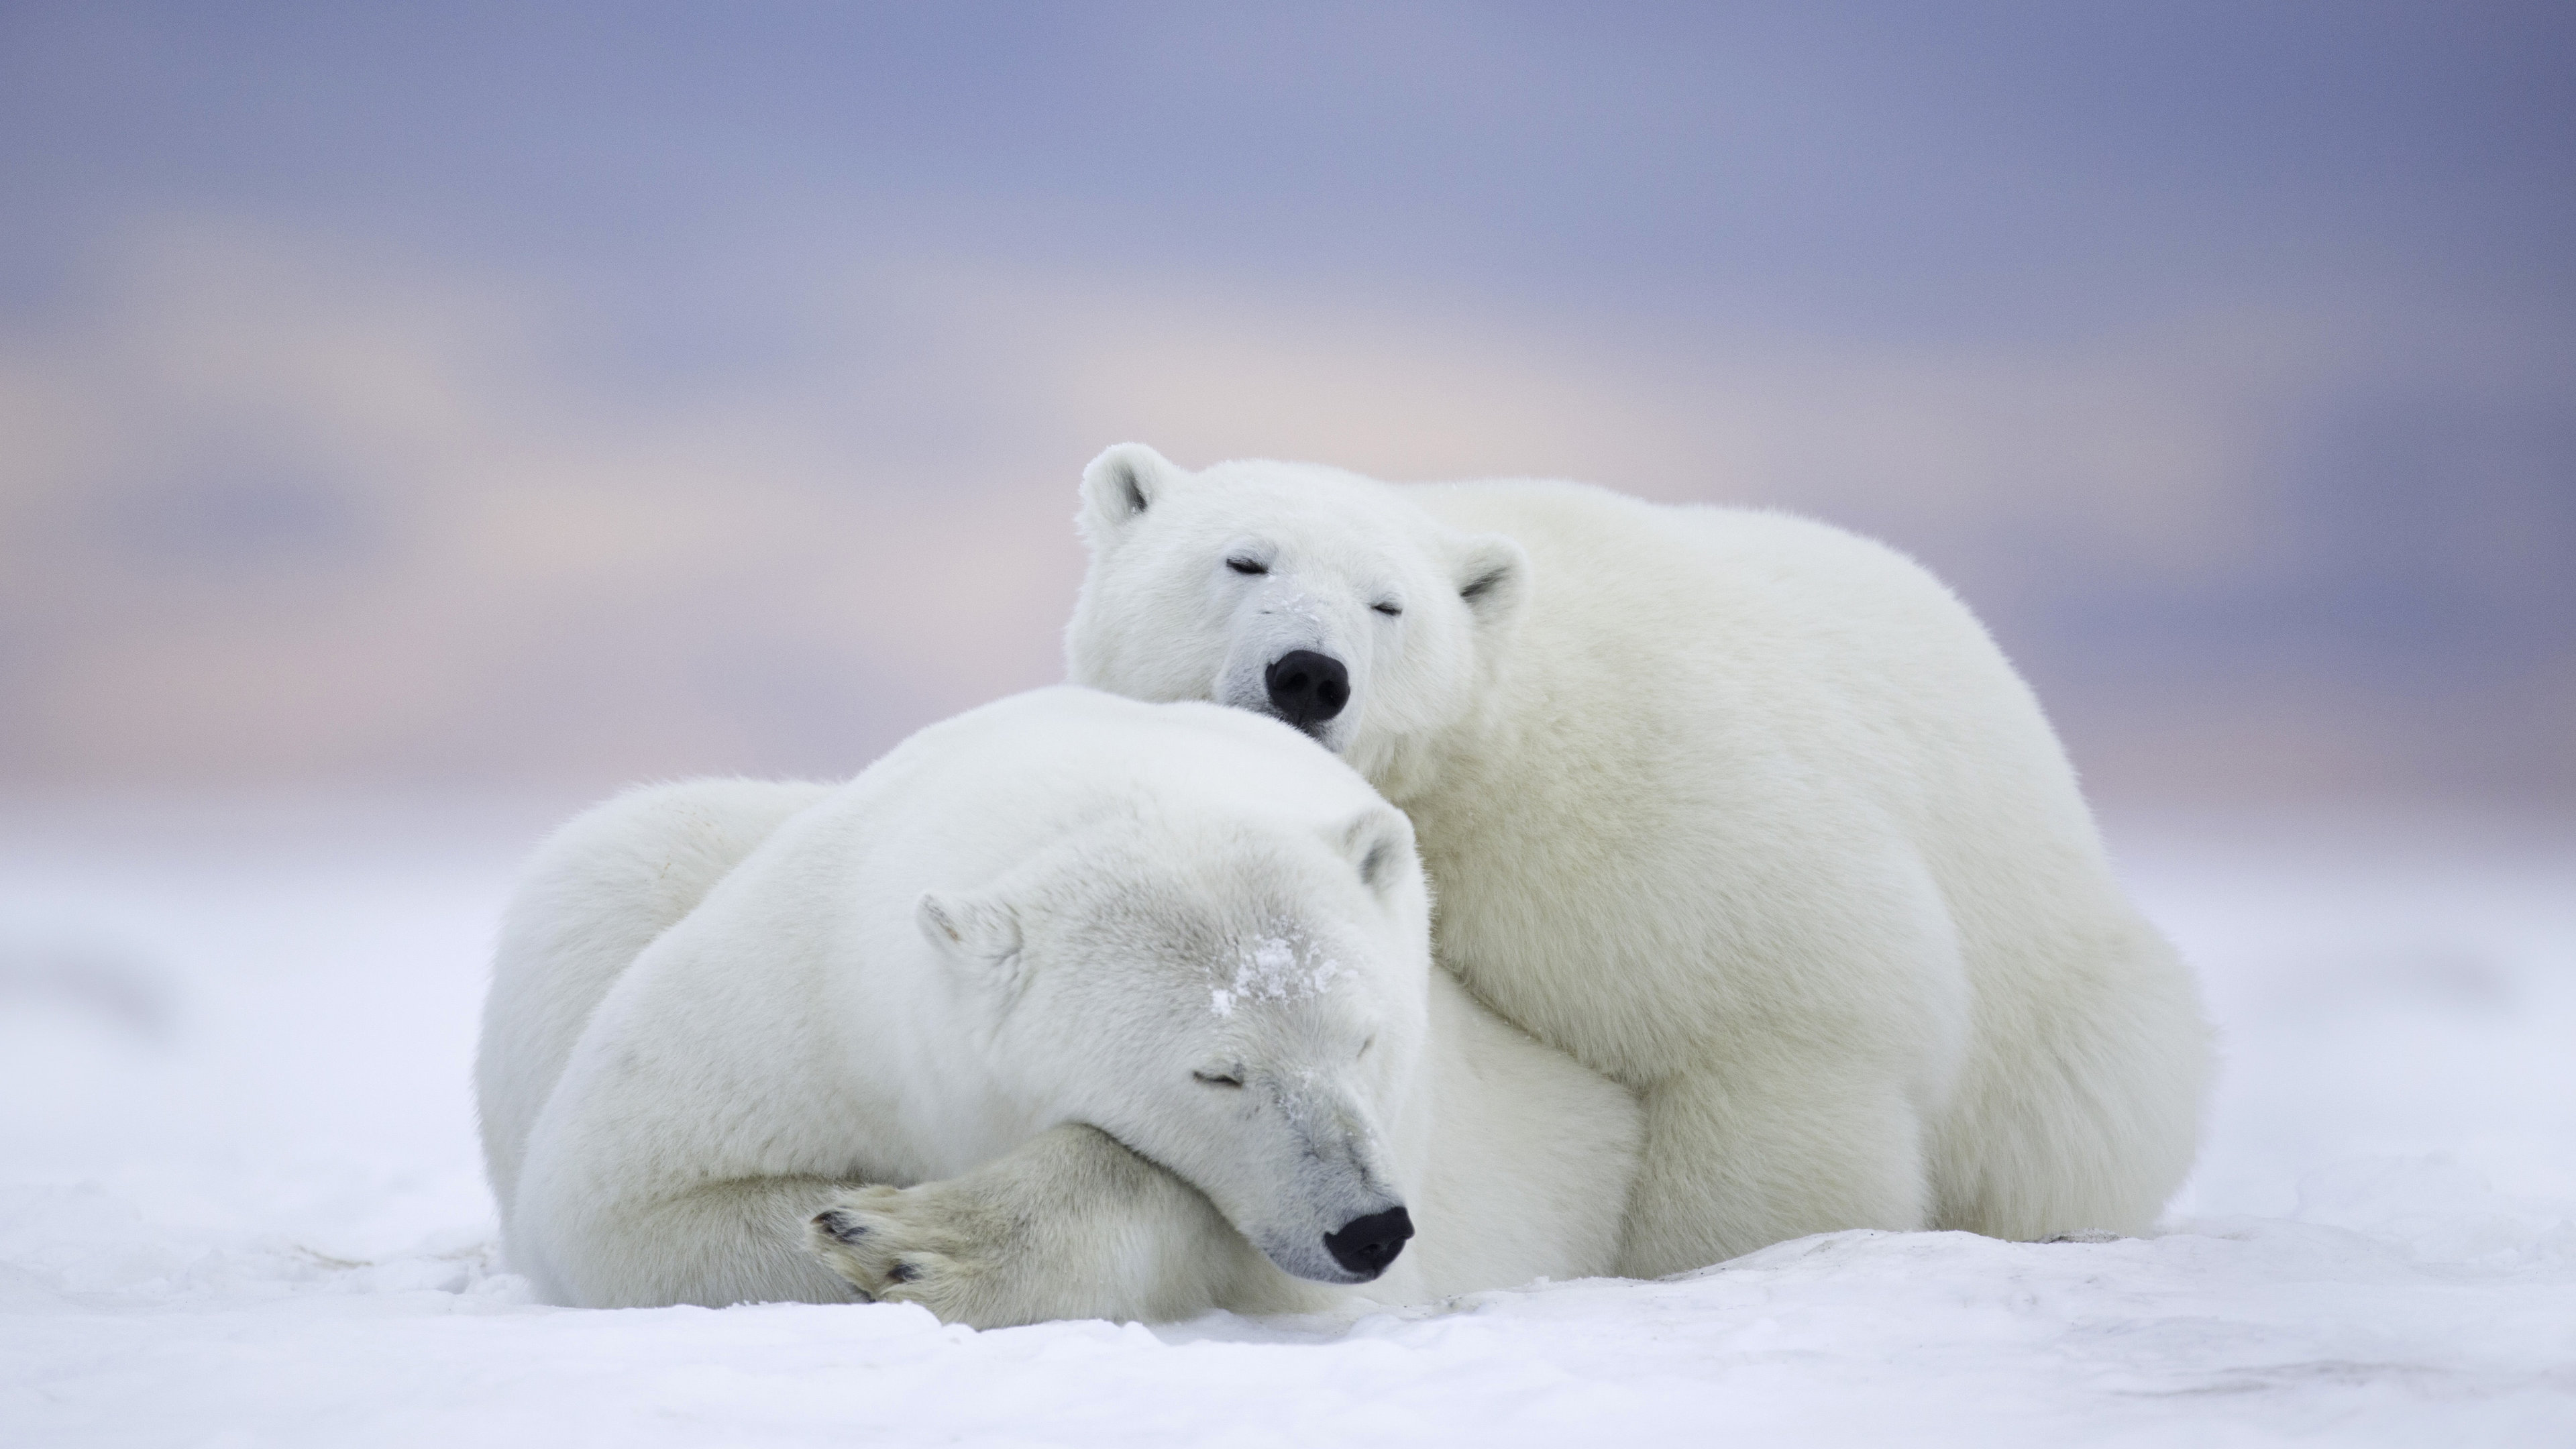 polar bears cold snow 1542238784 - Polar Bears Cold Snow - polar bear wallpapers, hd-wallpapers, cute wallpapers, cold wallpapers, animals wallpapers, 4k-wallpapers